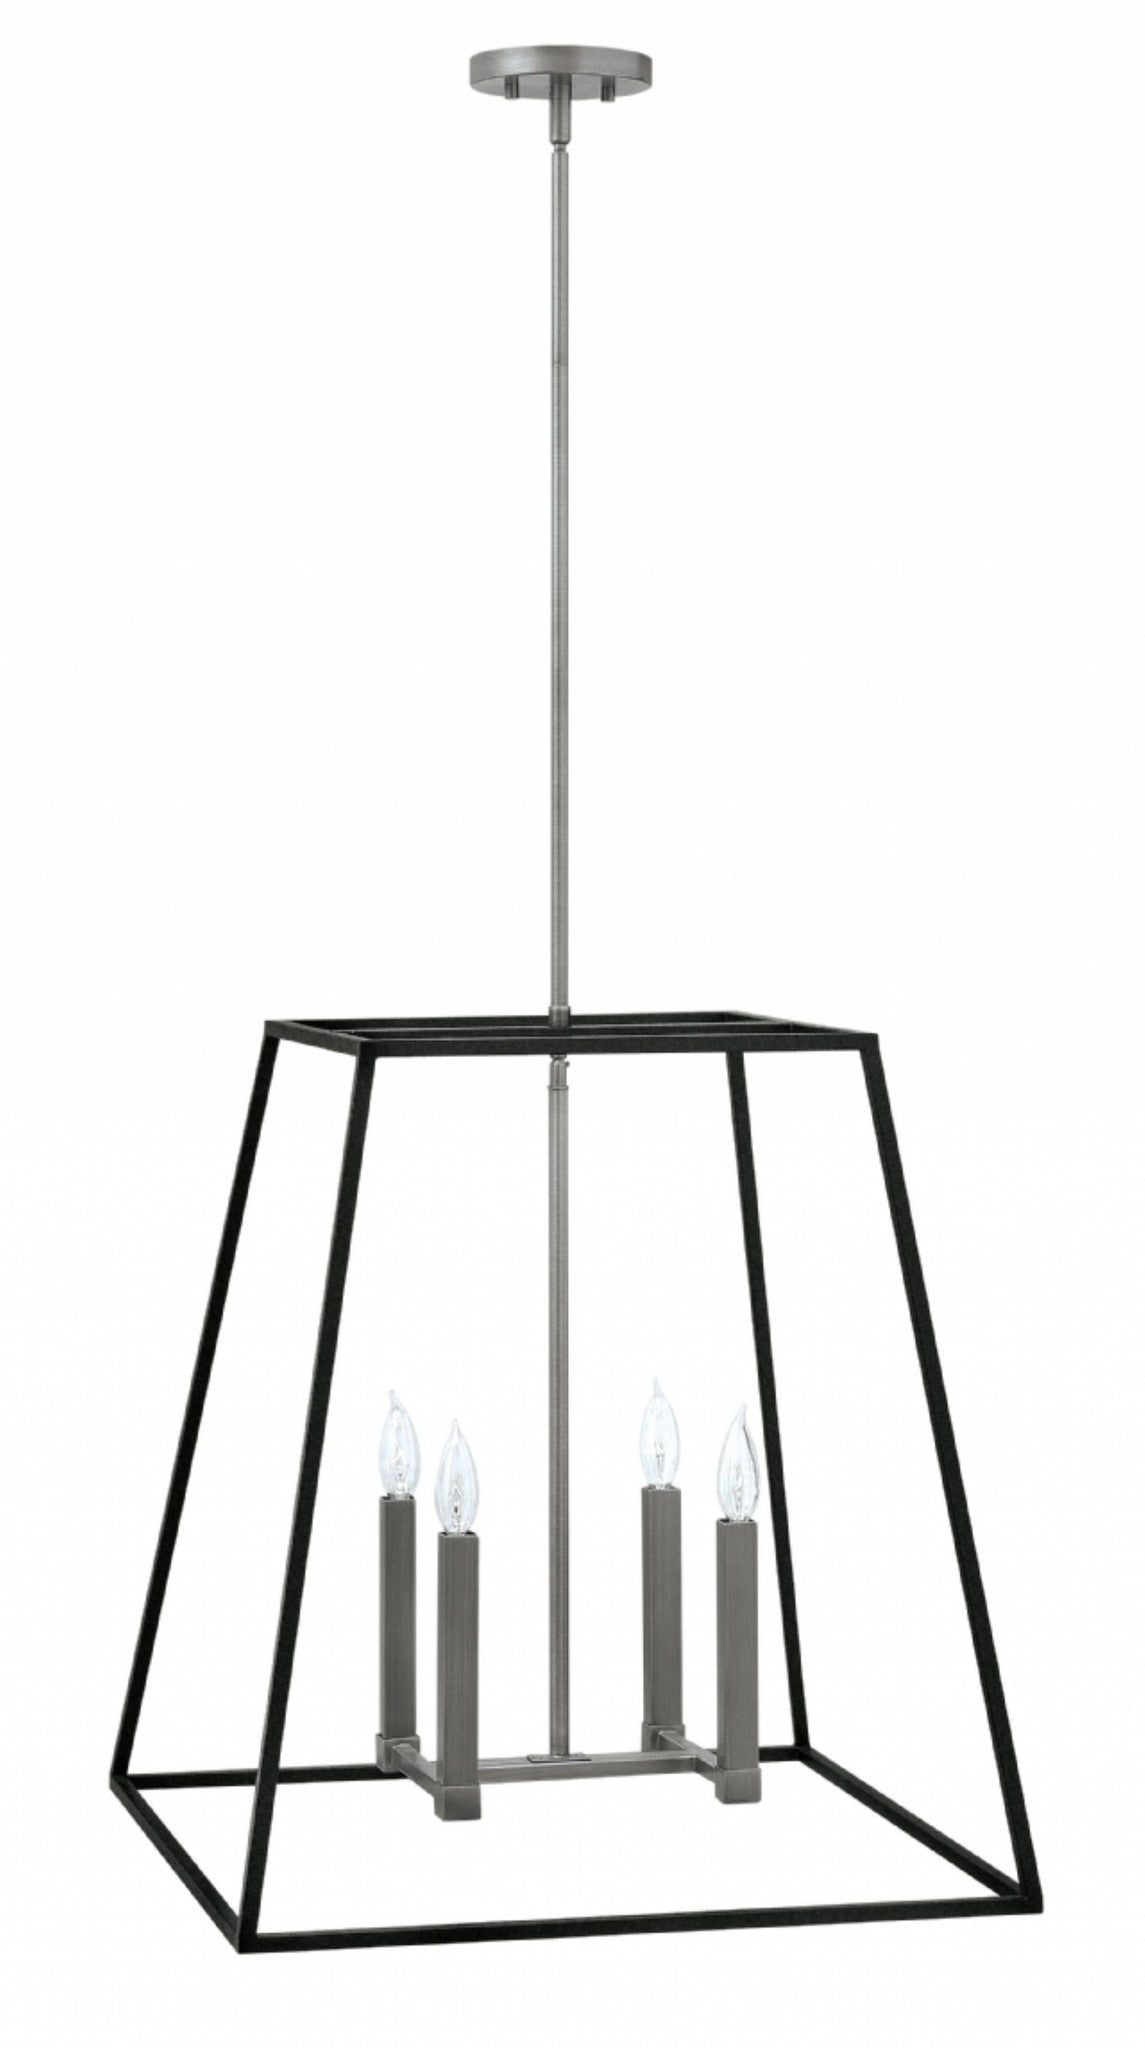 Fulton Large Foyer in Aged Zinc | open cage black metal lantern with Silver Accents by Hinkley 3336DZ